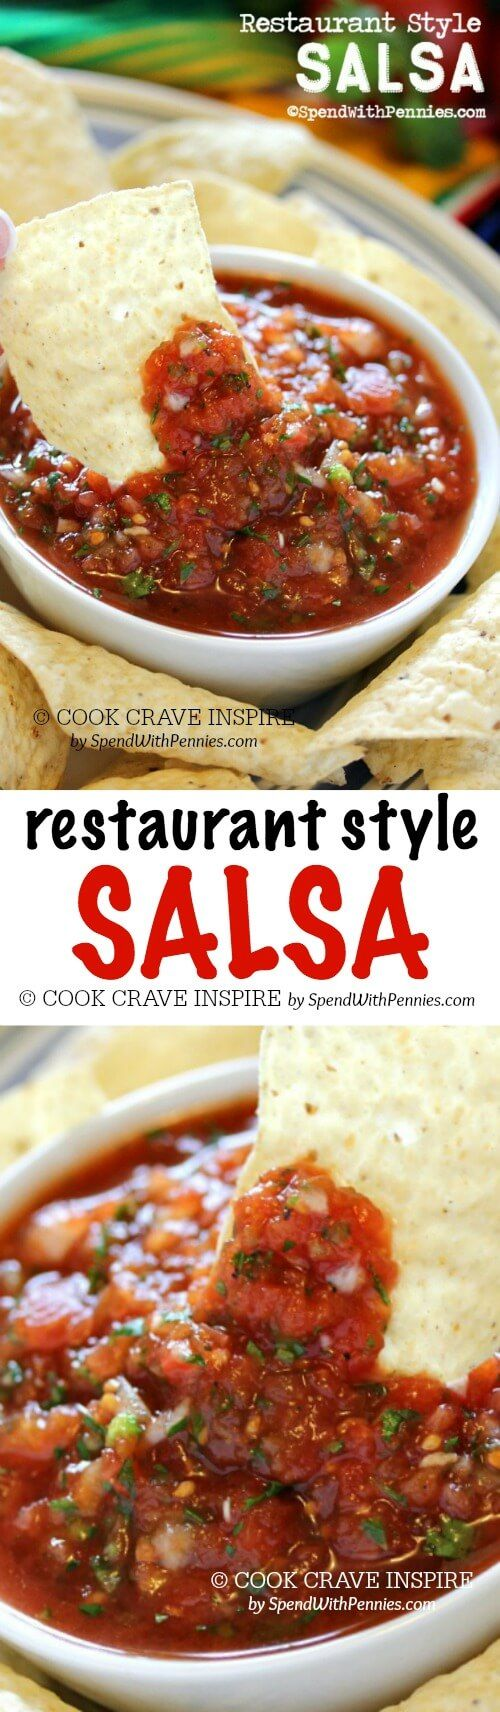 This delicious salsa is just like the salsa you get at your favorite Mexican restaurant! The best part is that it takes just a couple of minutes to make!